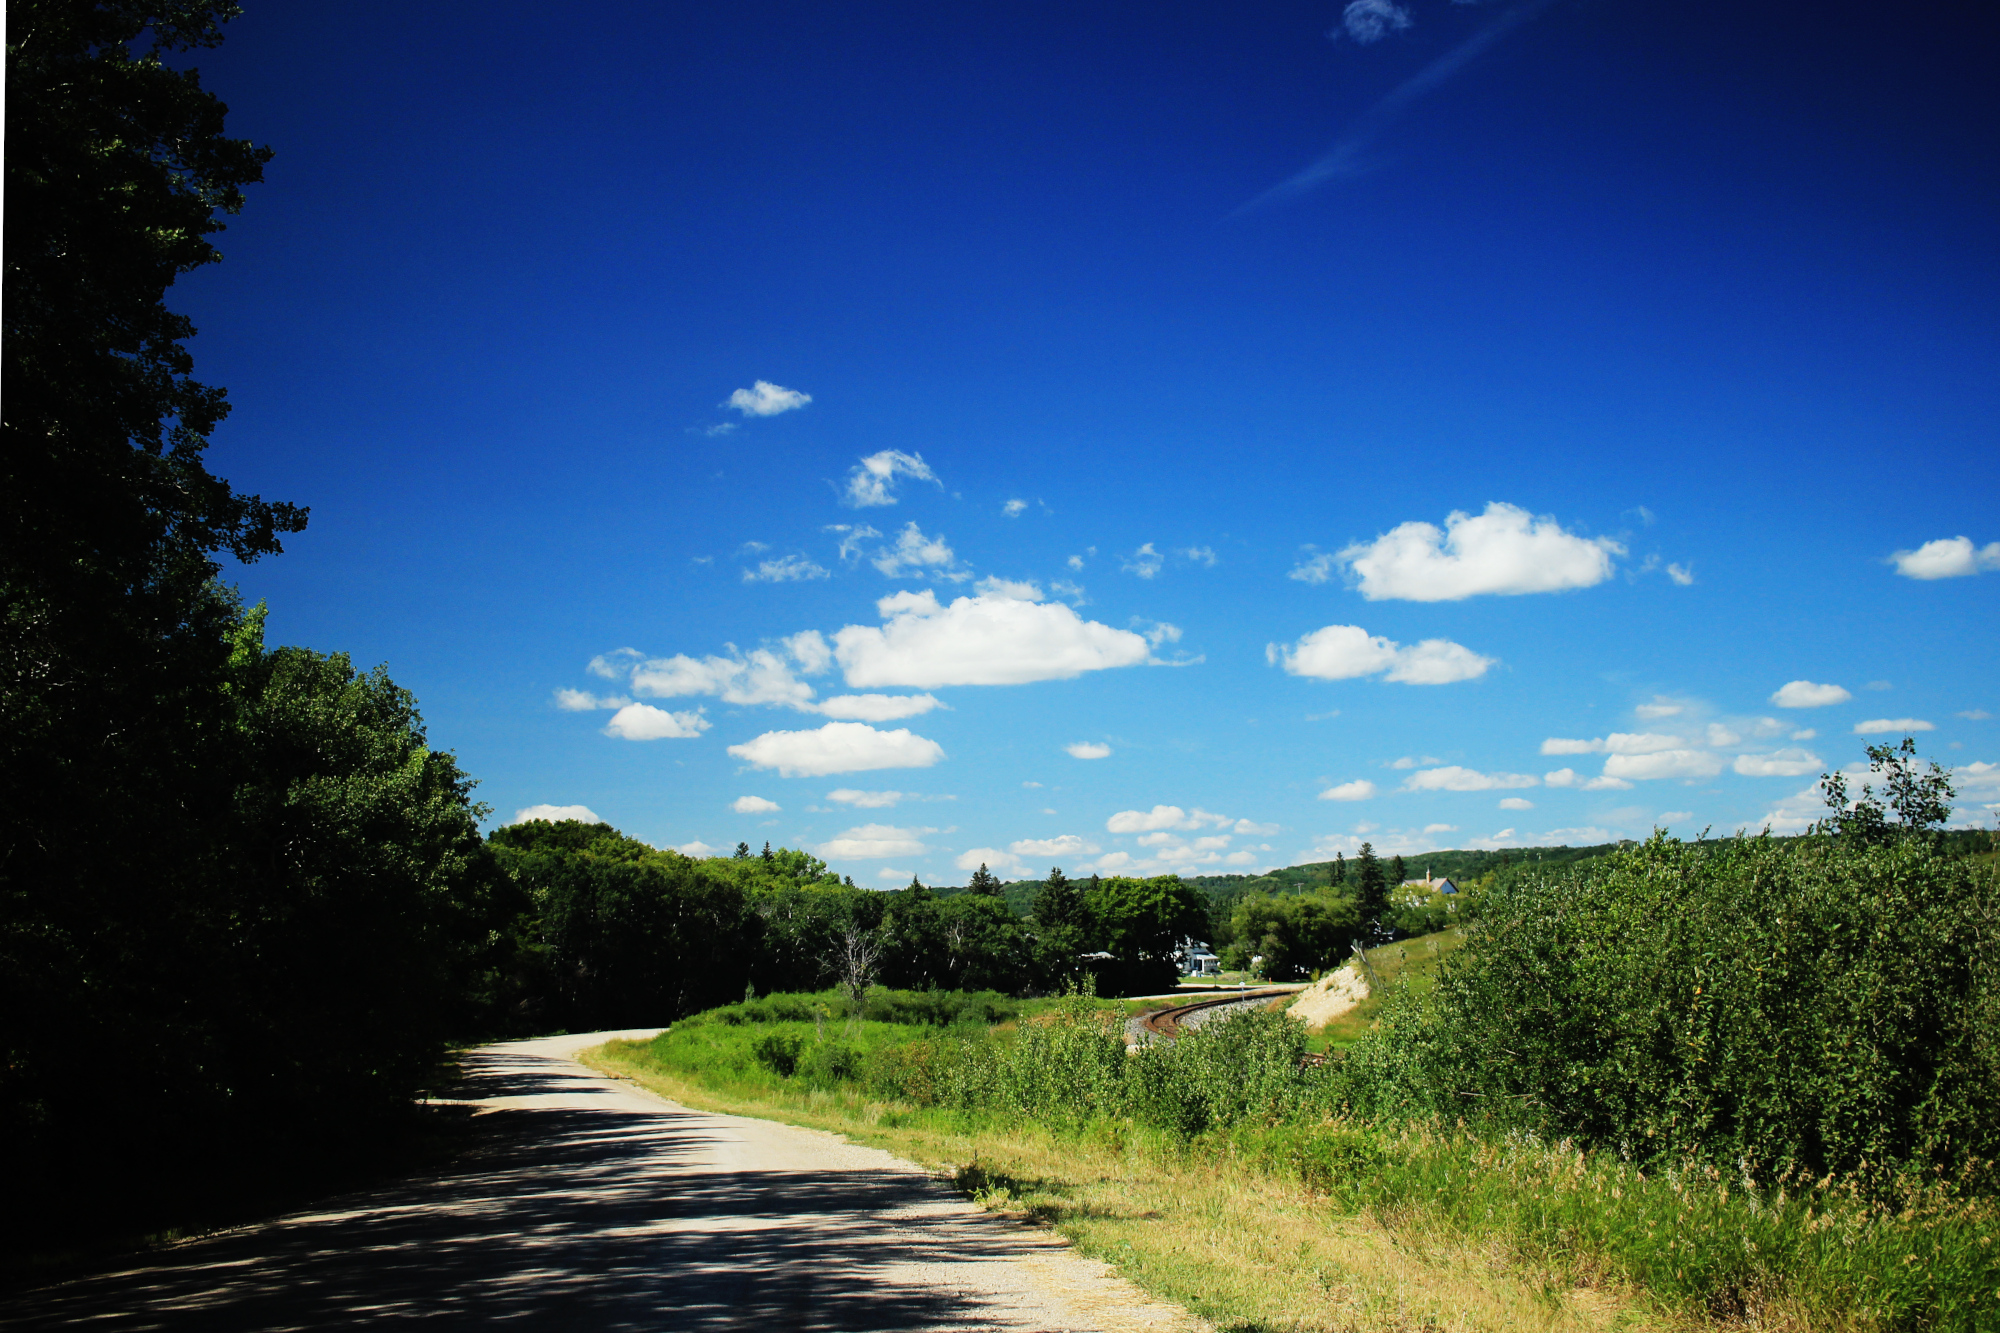 Blue sky with a few clouds above the road and the railroad